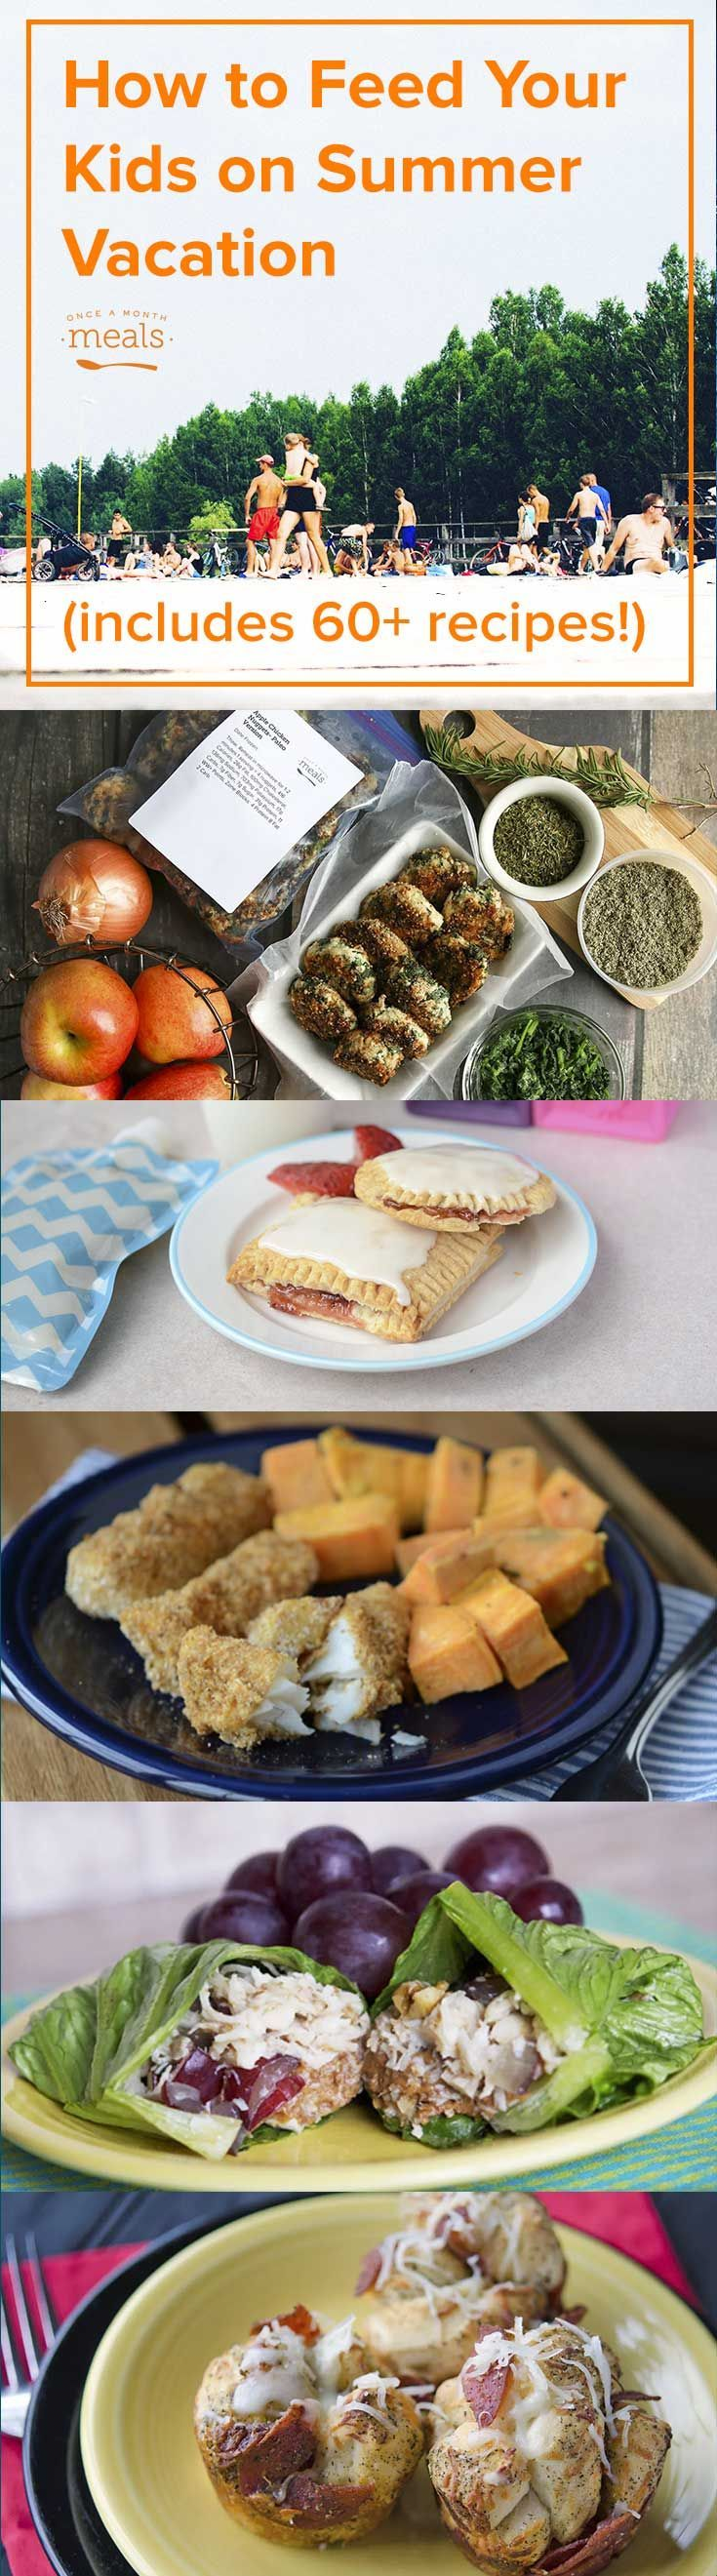 How to feed your kids on summer vacation meal ideas vacation and how to feed your kids on summer vacation forumfinder Choice Image